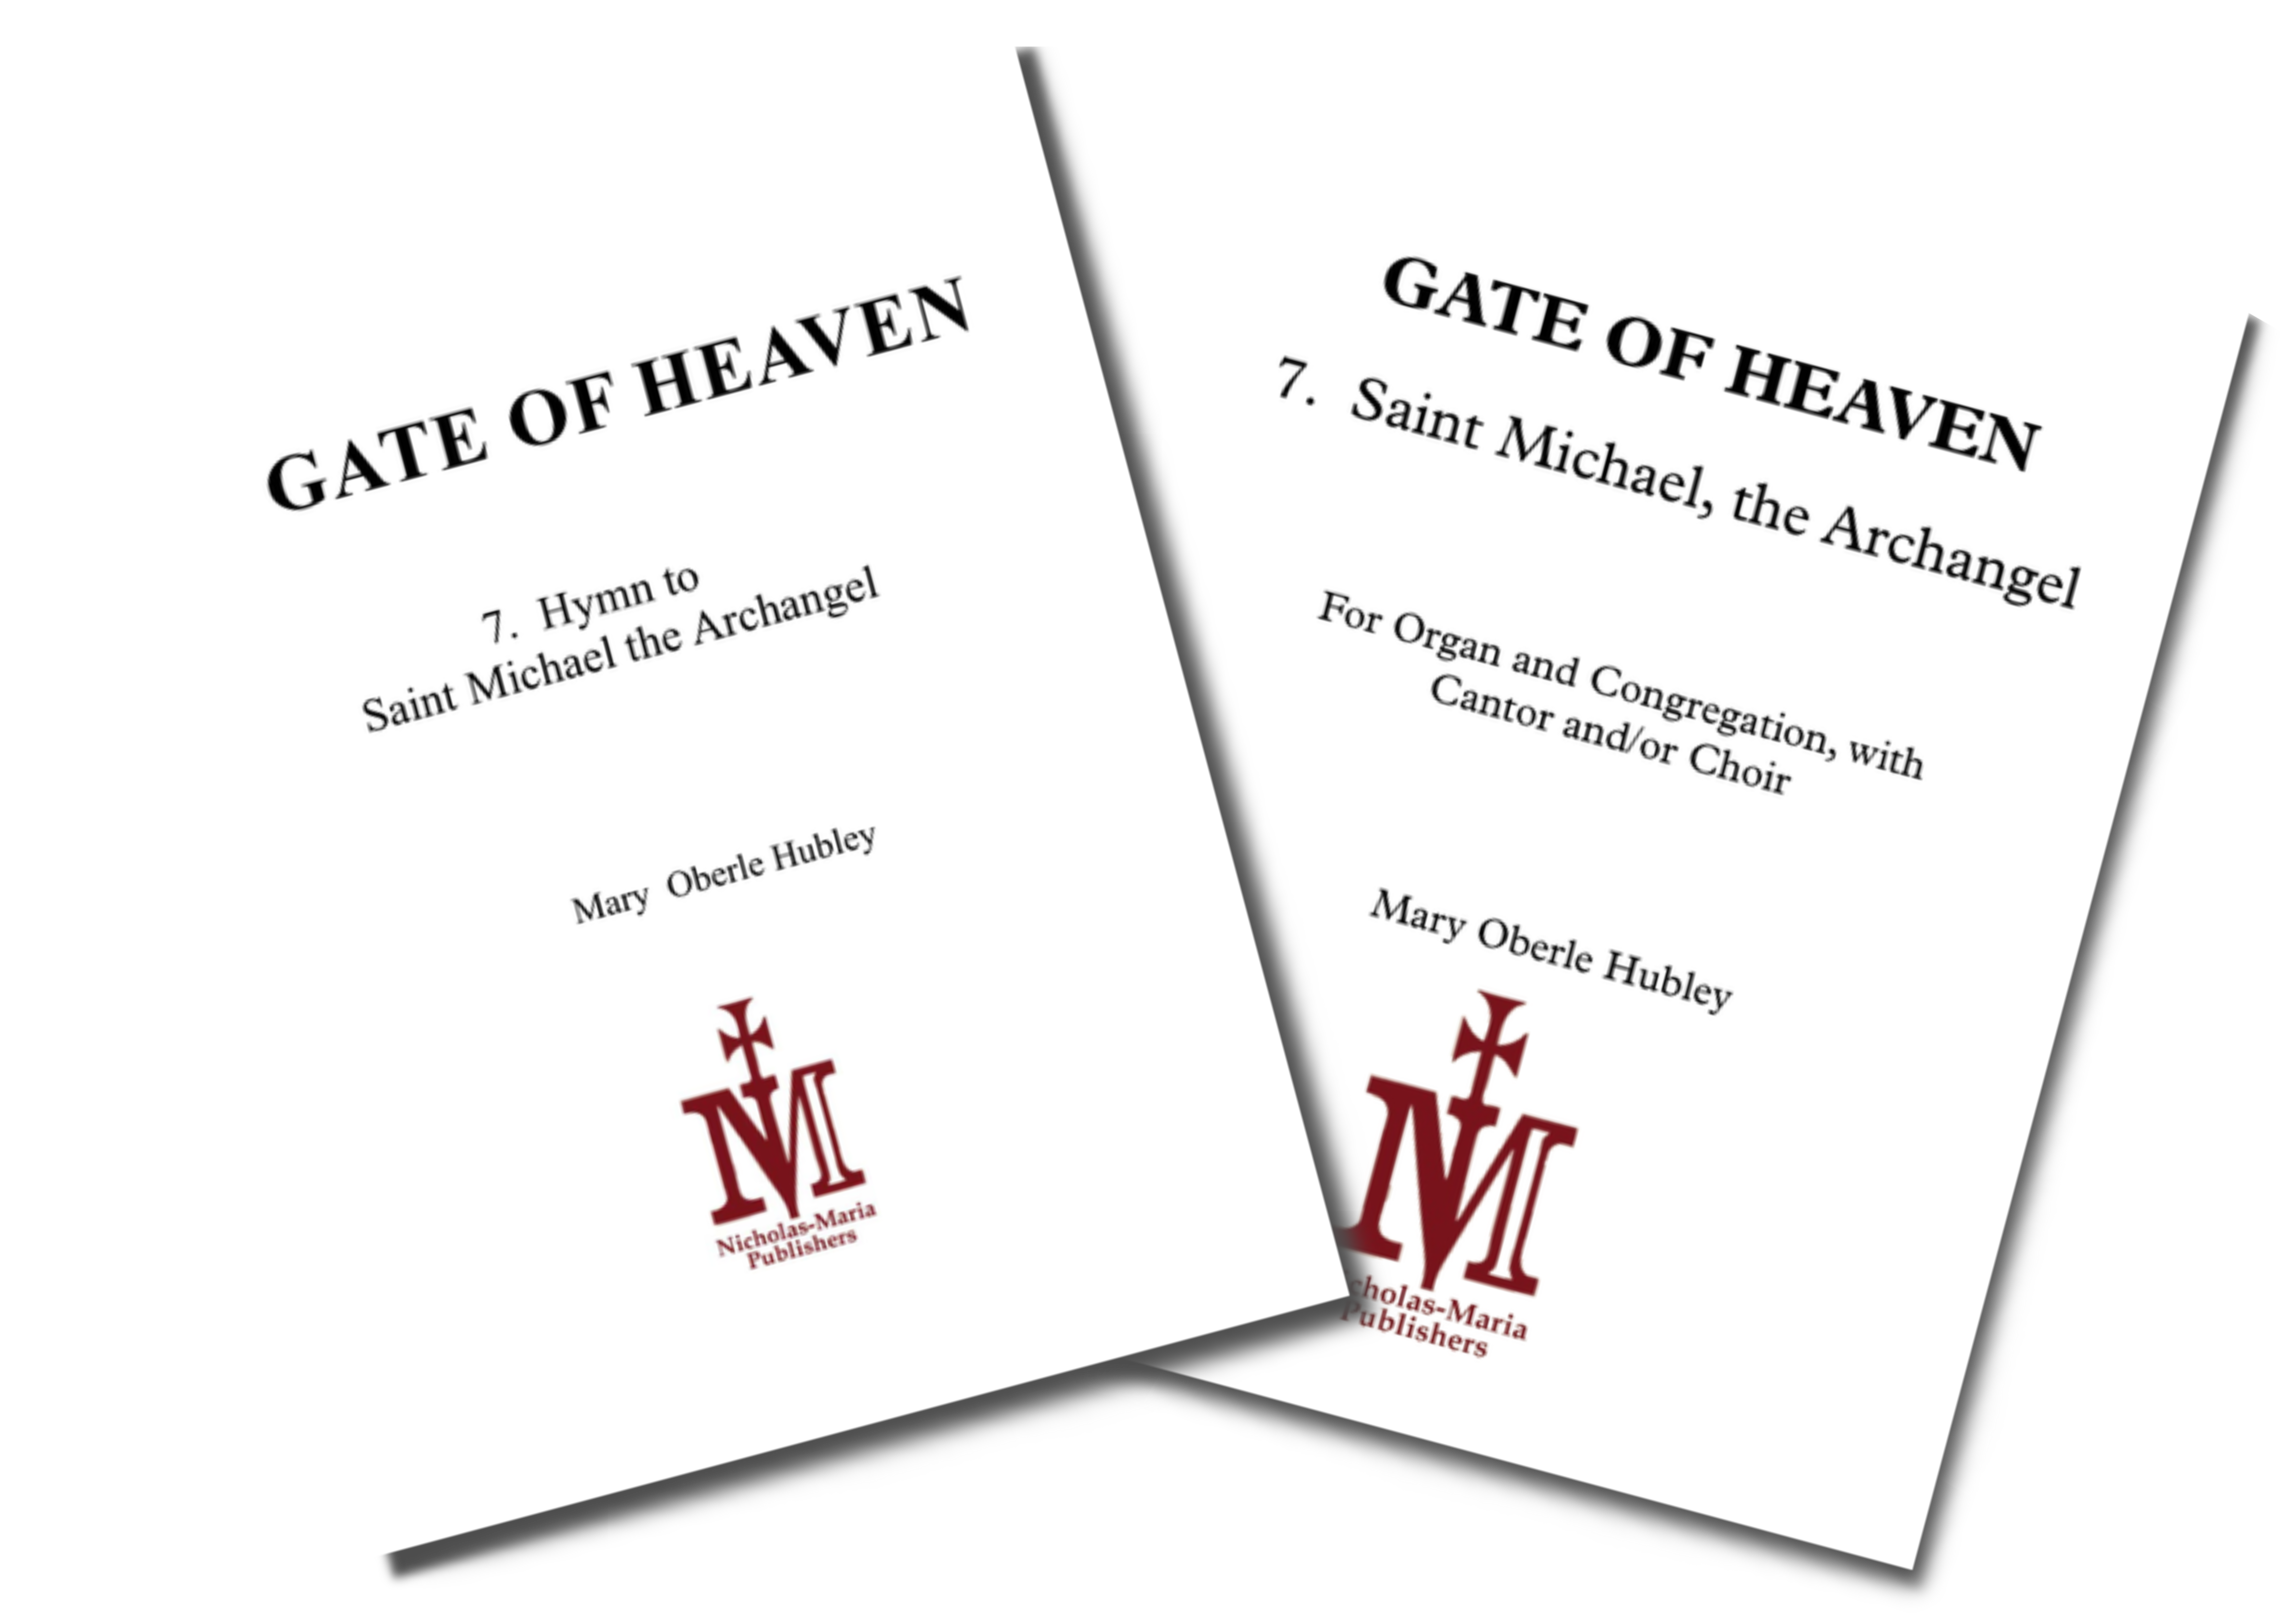 St. Michael Double Cover